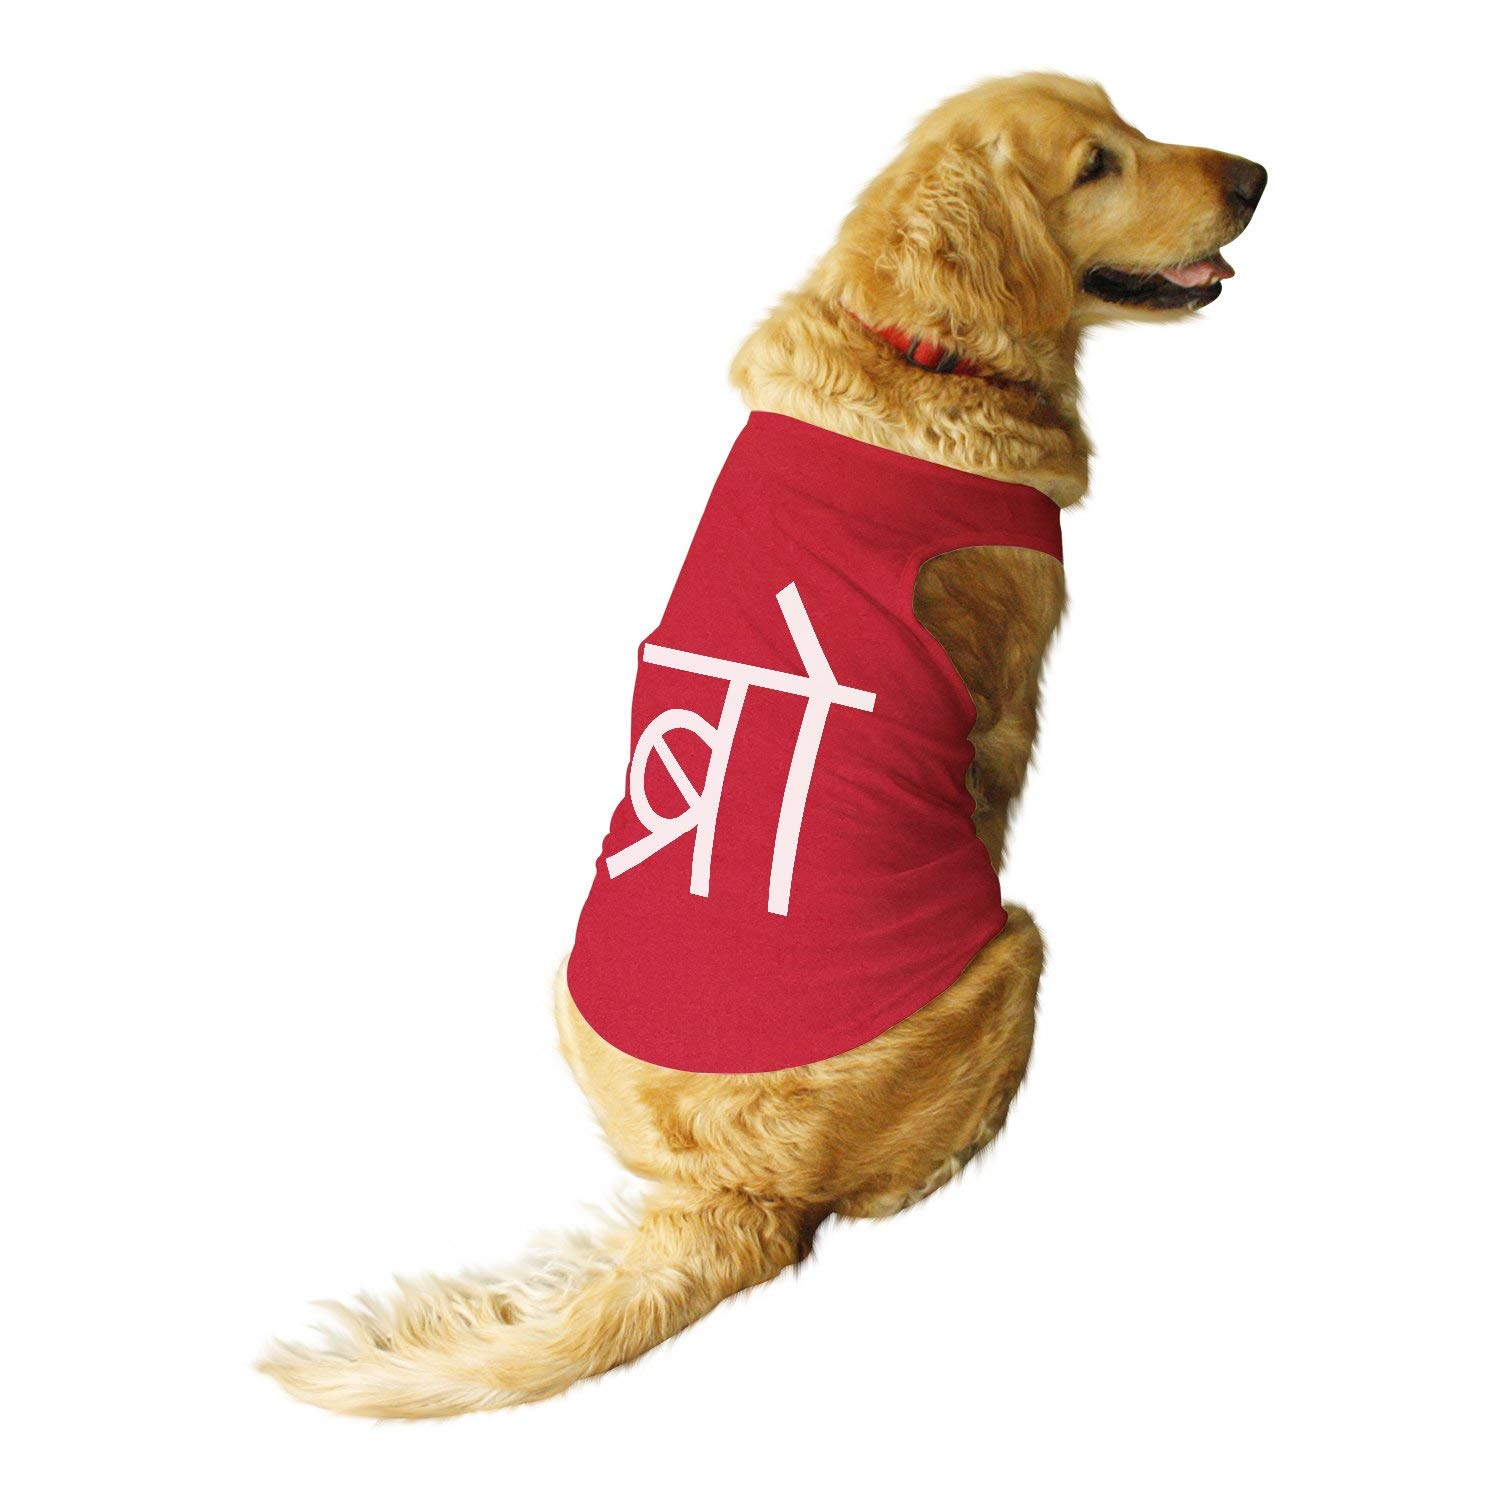 Desi Bro Printed Tshirt by Ruse Round Neck Sleeveless Vest Tank T-Shirt/Tees for Dog Clothes